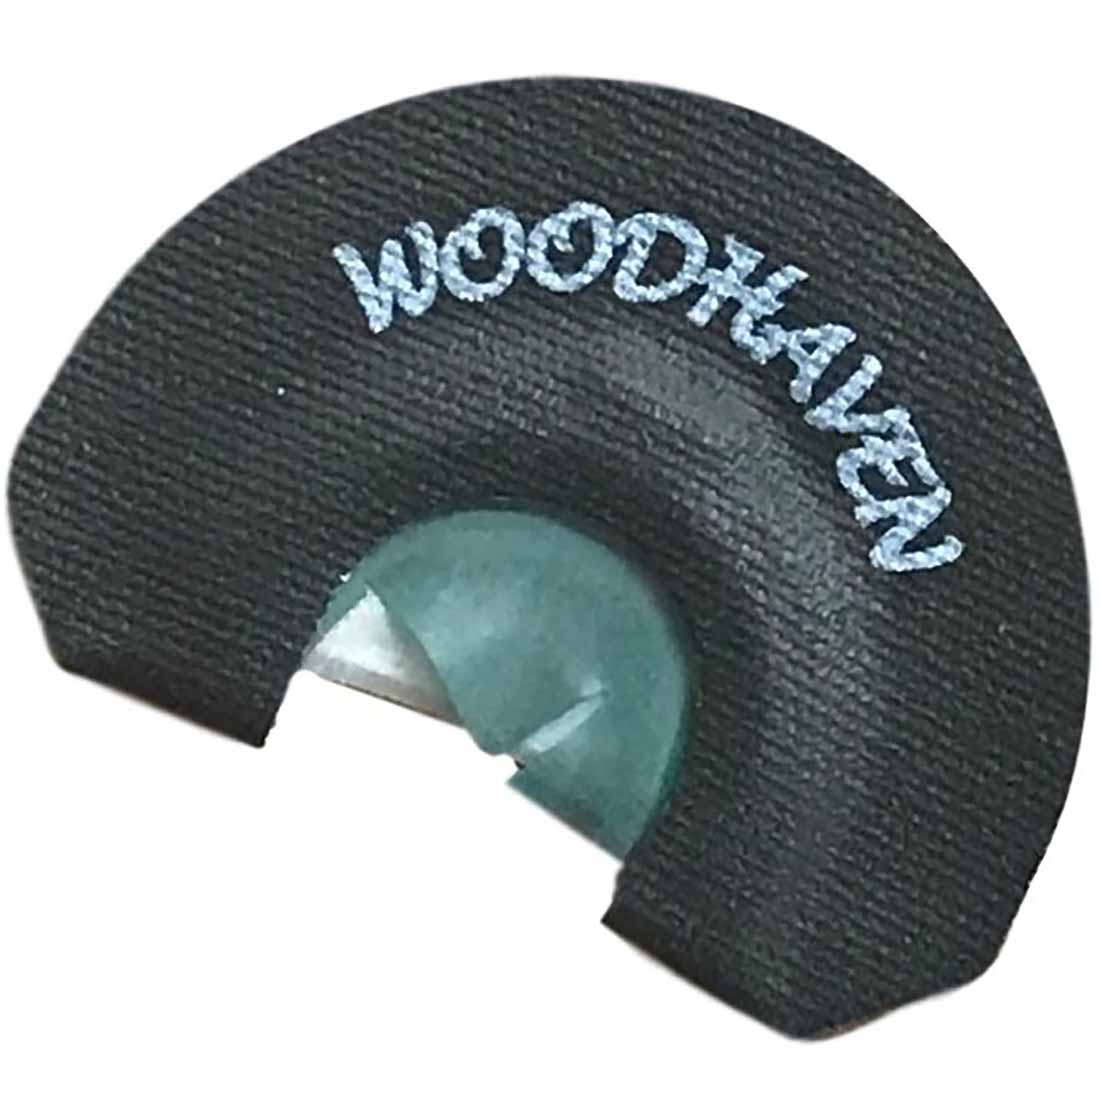 Woodhaven Ninja Hammer Turkey Mouth Call_1.jpg